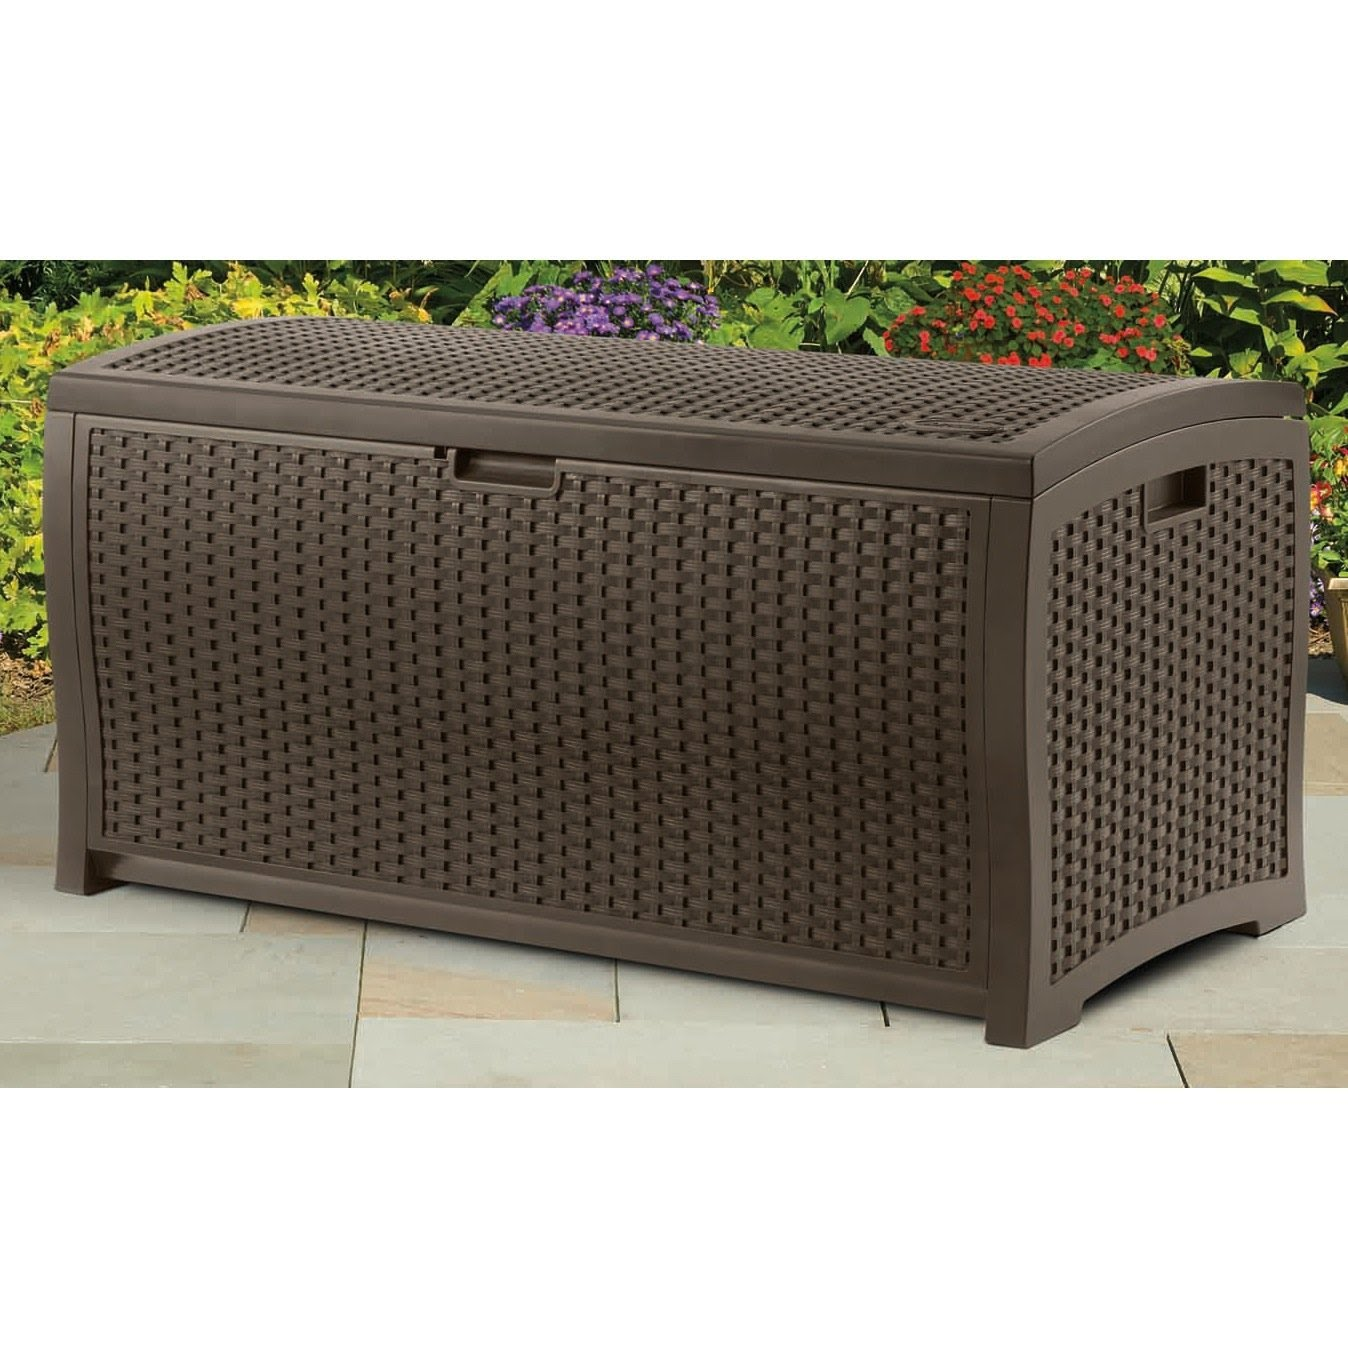 Keter 150 Gallon Deck Box | Sams Deck Box | Outdoor Patio Storage Chest